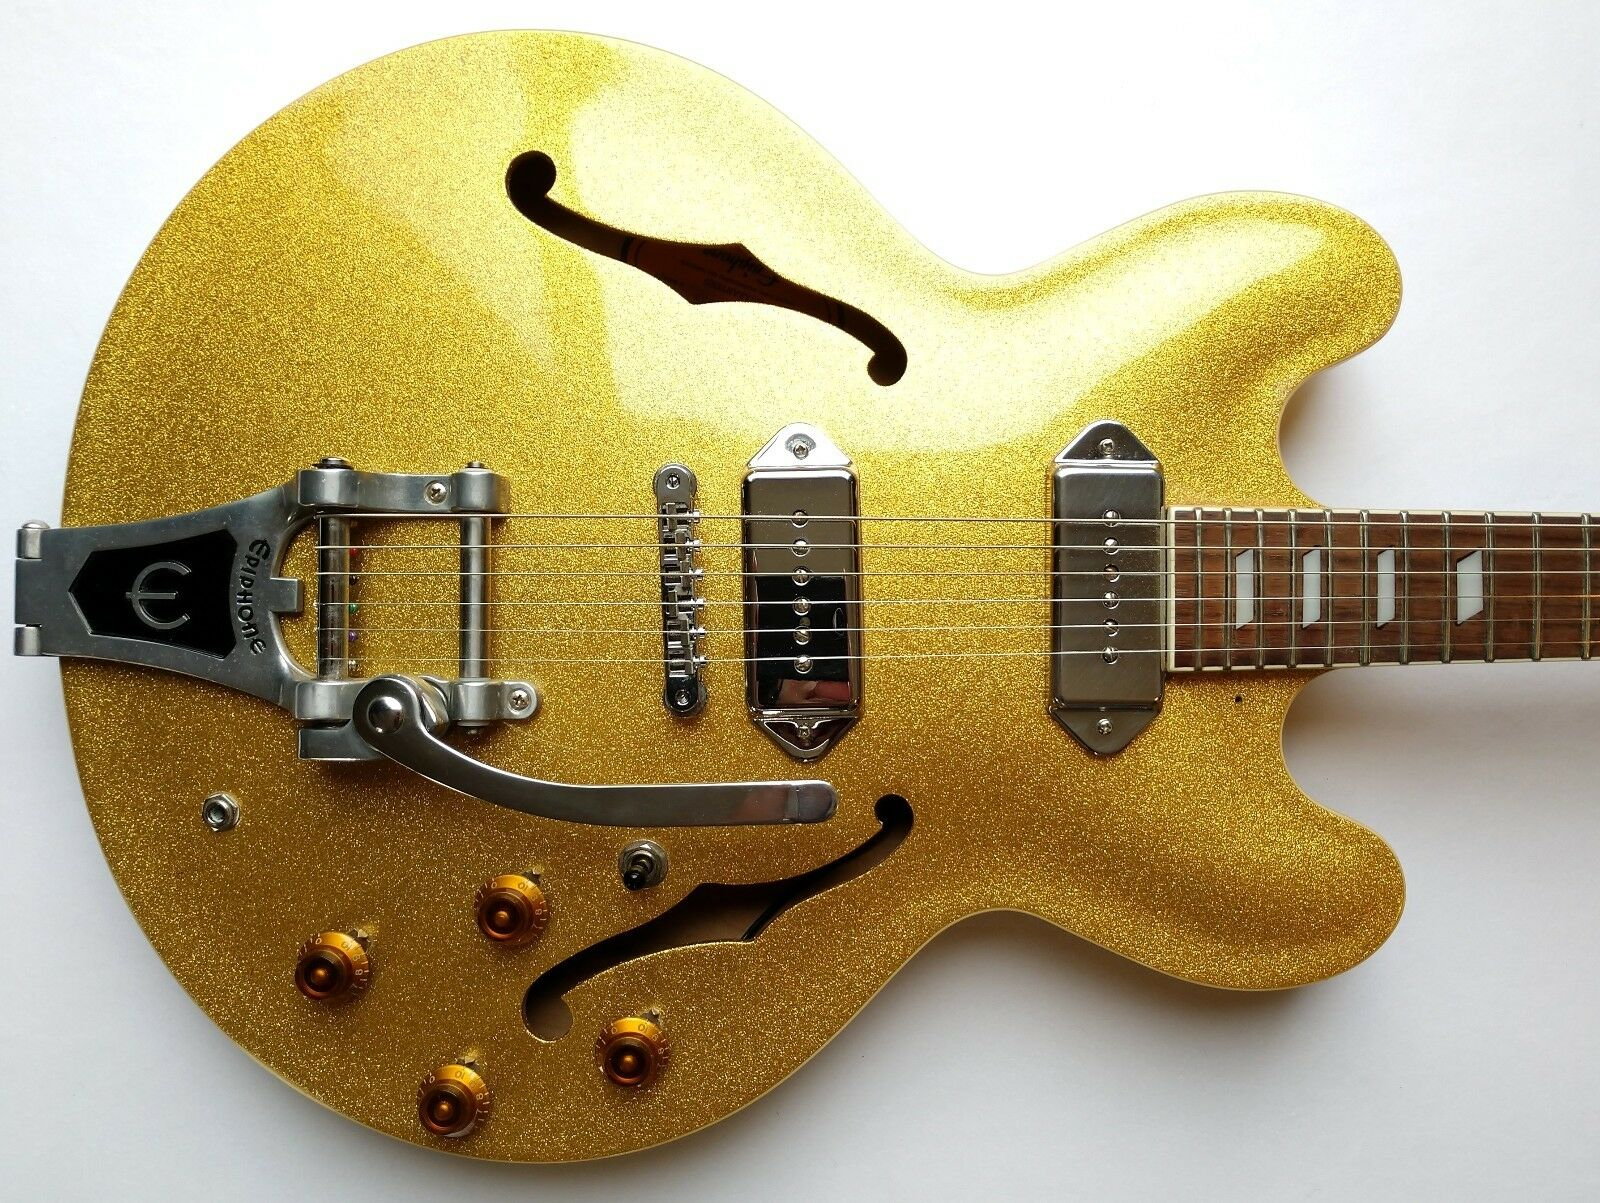 Epiphone Casino VT-GF Hollow Body Electric Guitar Very Rare 1996 Gold MIK w HSC